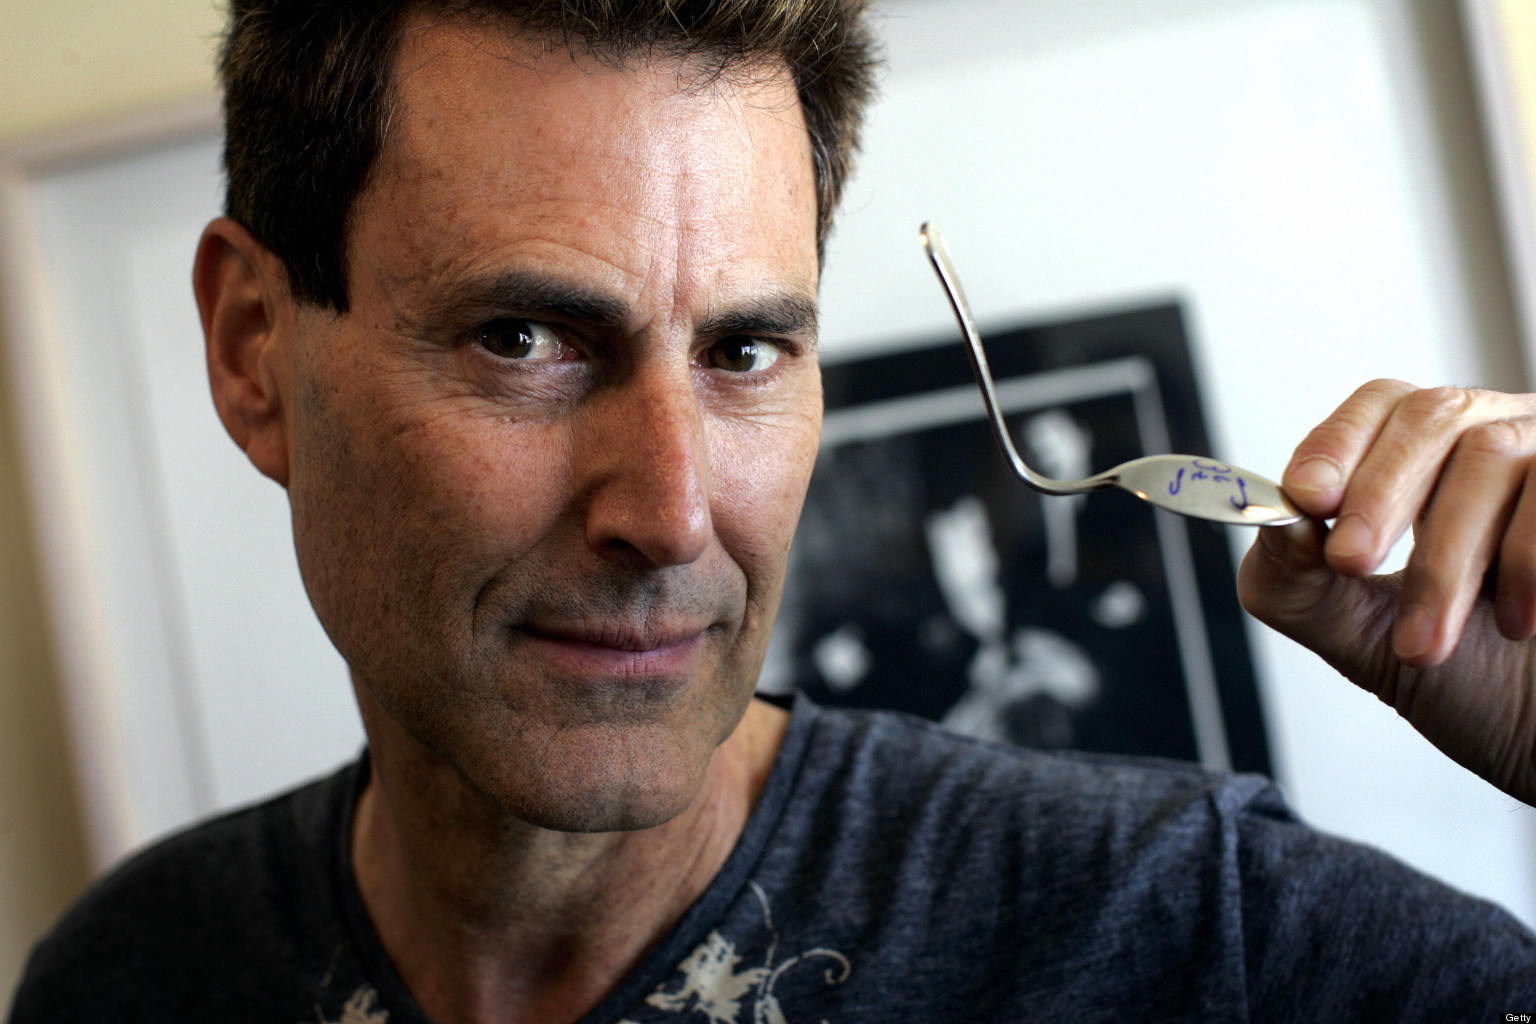 Uri Geller CIA Masterspy | Confesses to working for the CIA - Powered by Inception Radio Network